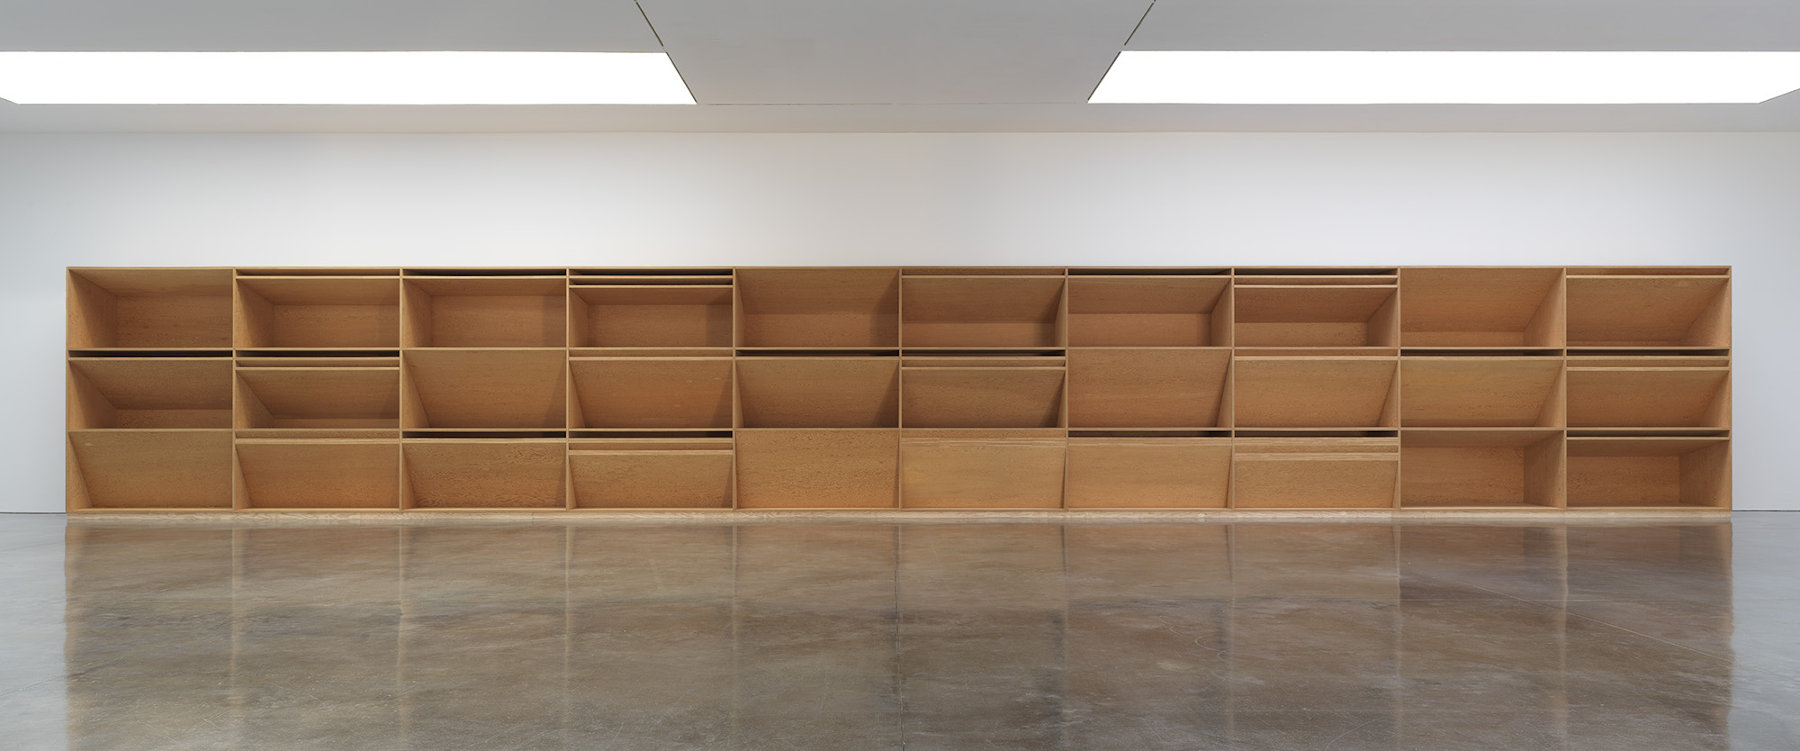 Gagosian West 21st Donald Judd 1